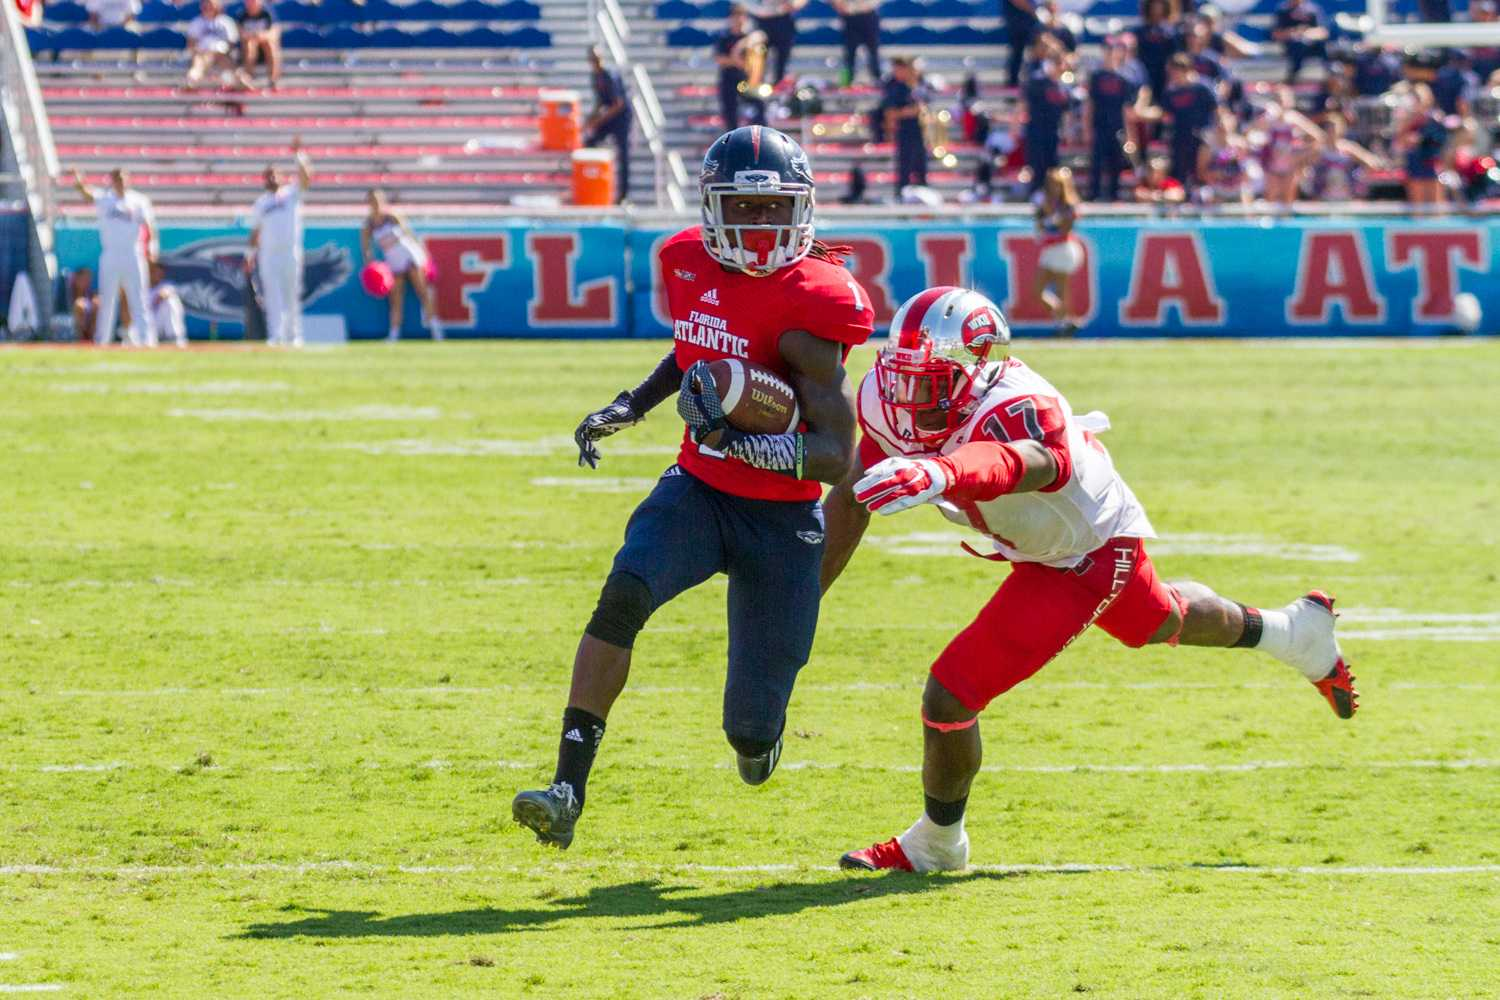 Mohammed F Emran | Web Editor  Lucky Whitehead evades a Hilltopper on his way to scoring the game-winning touchdown.